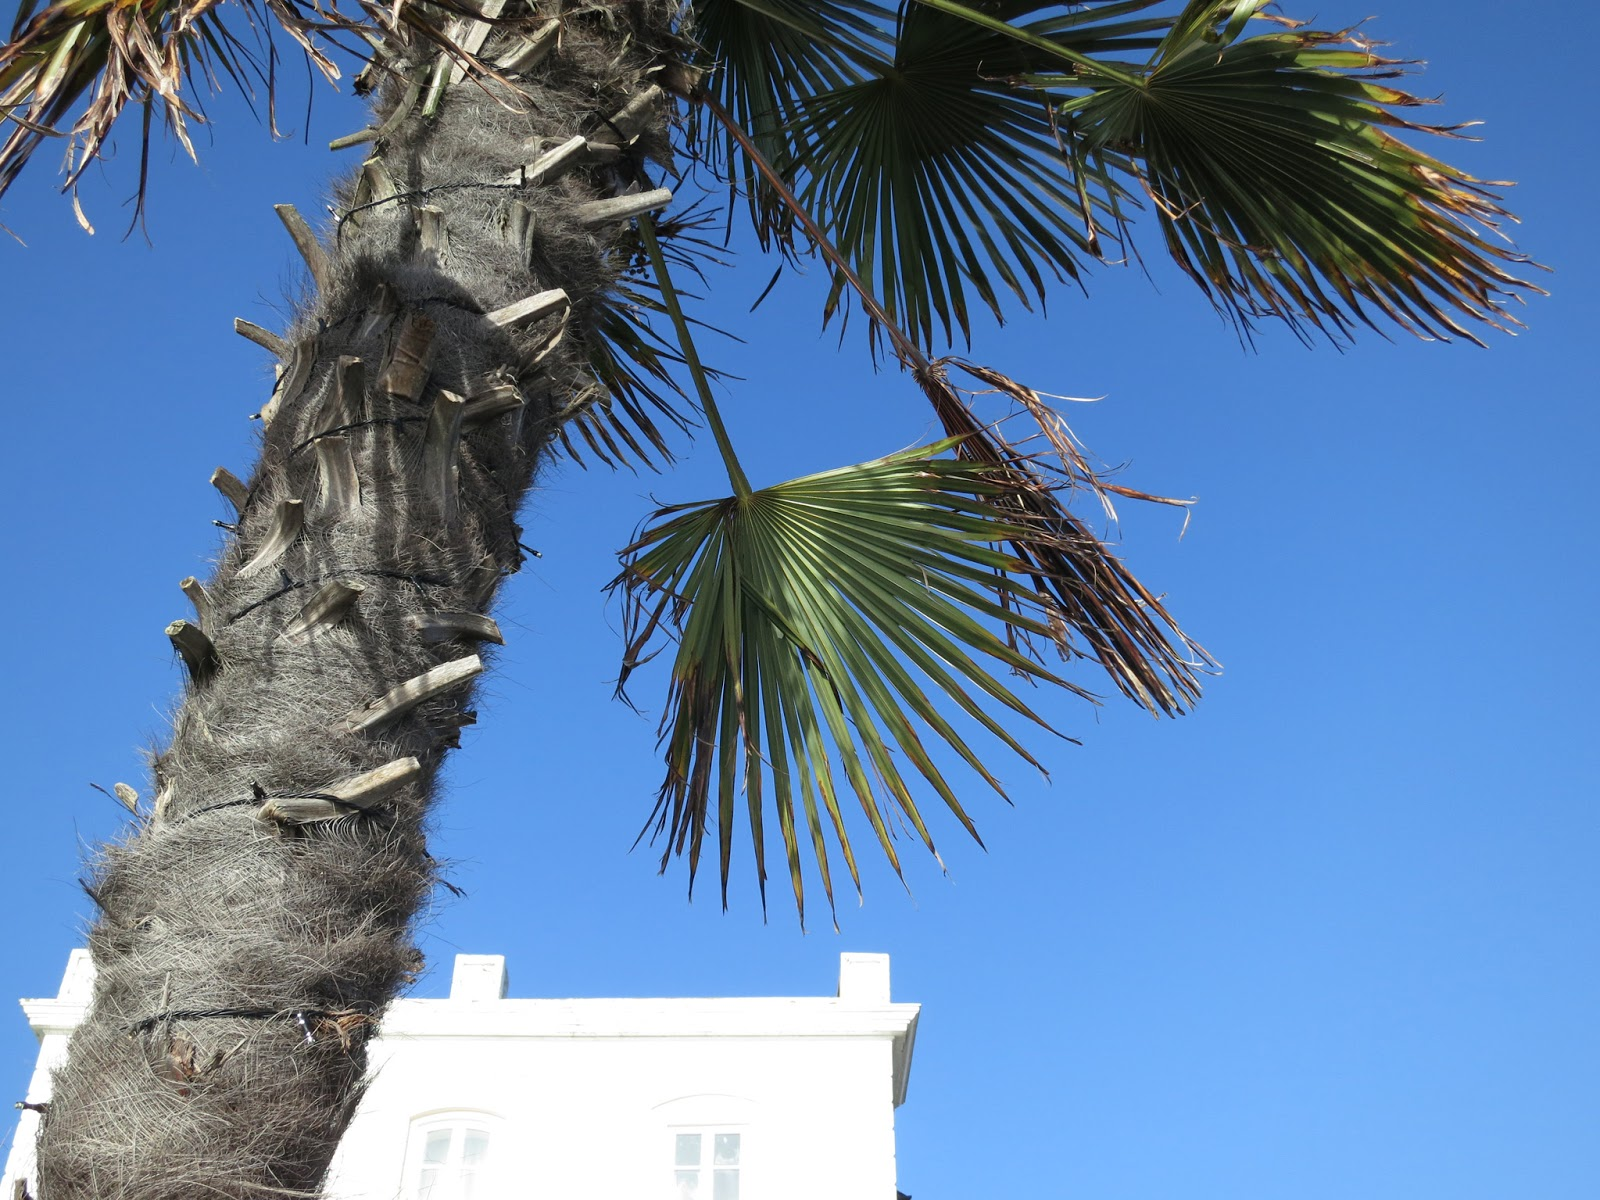 Tree (perhaps Windmill Palm?) with white building and blue sky.